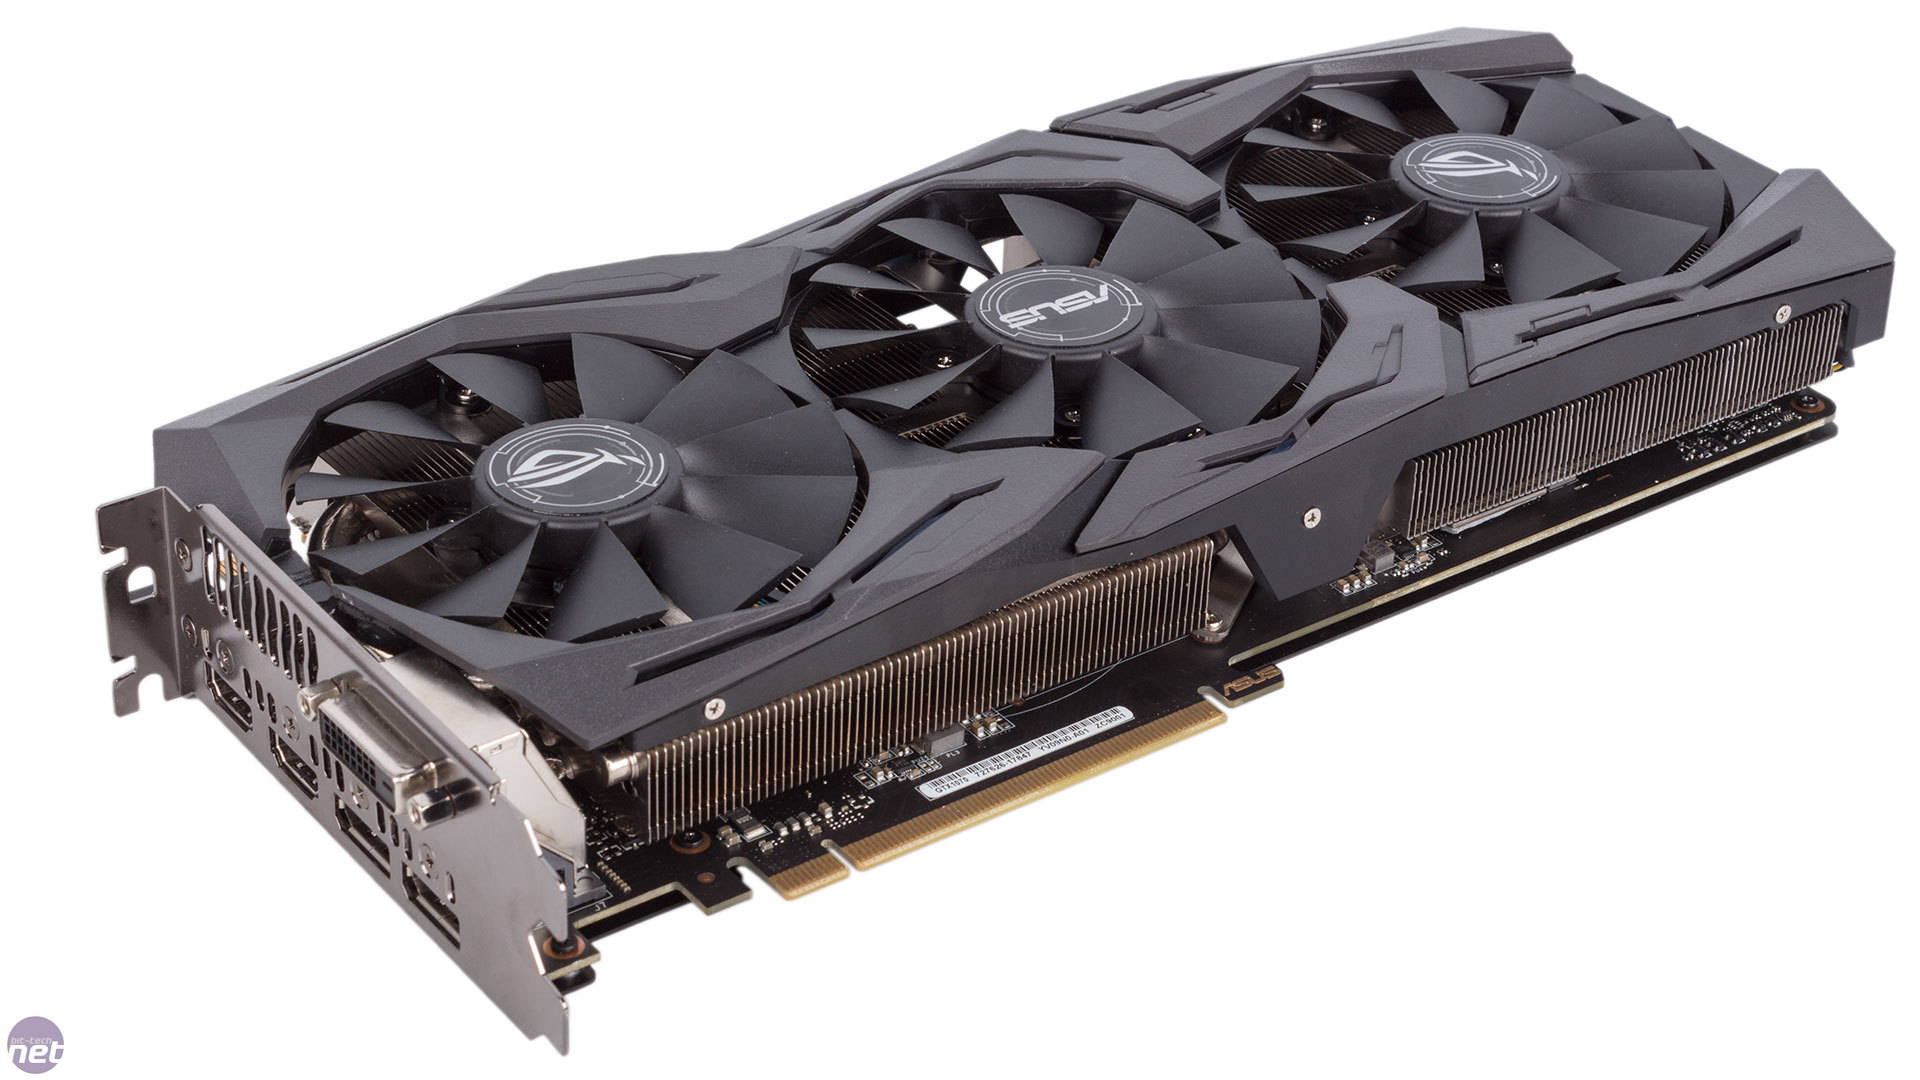 Asus GeForce GTX 1070 Strix Review | bit-tech.net